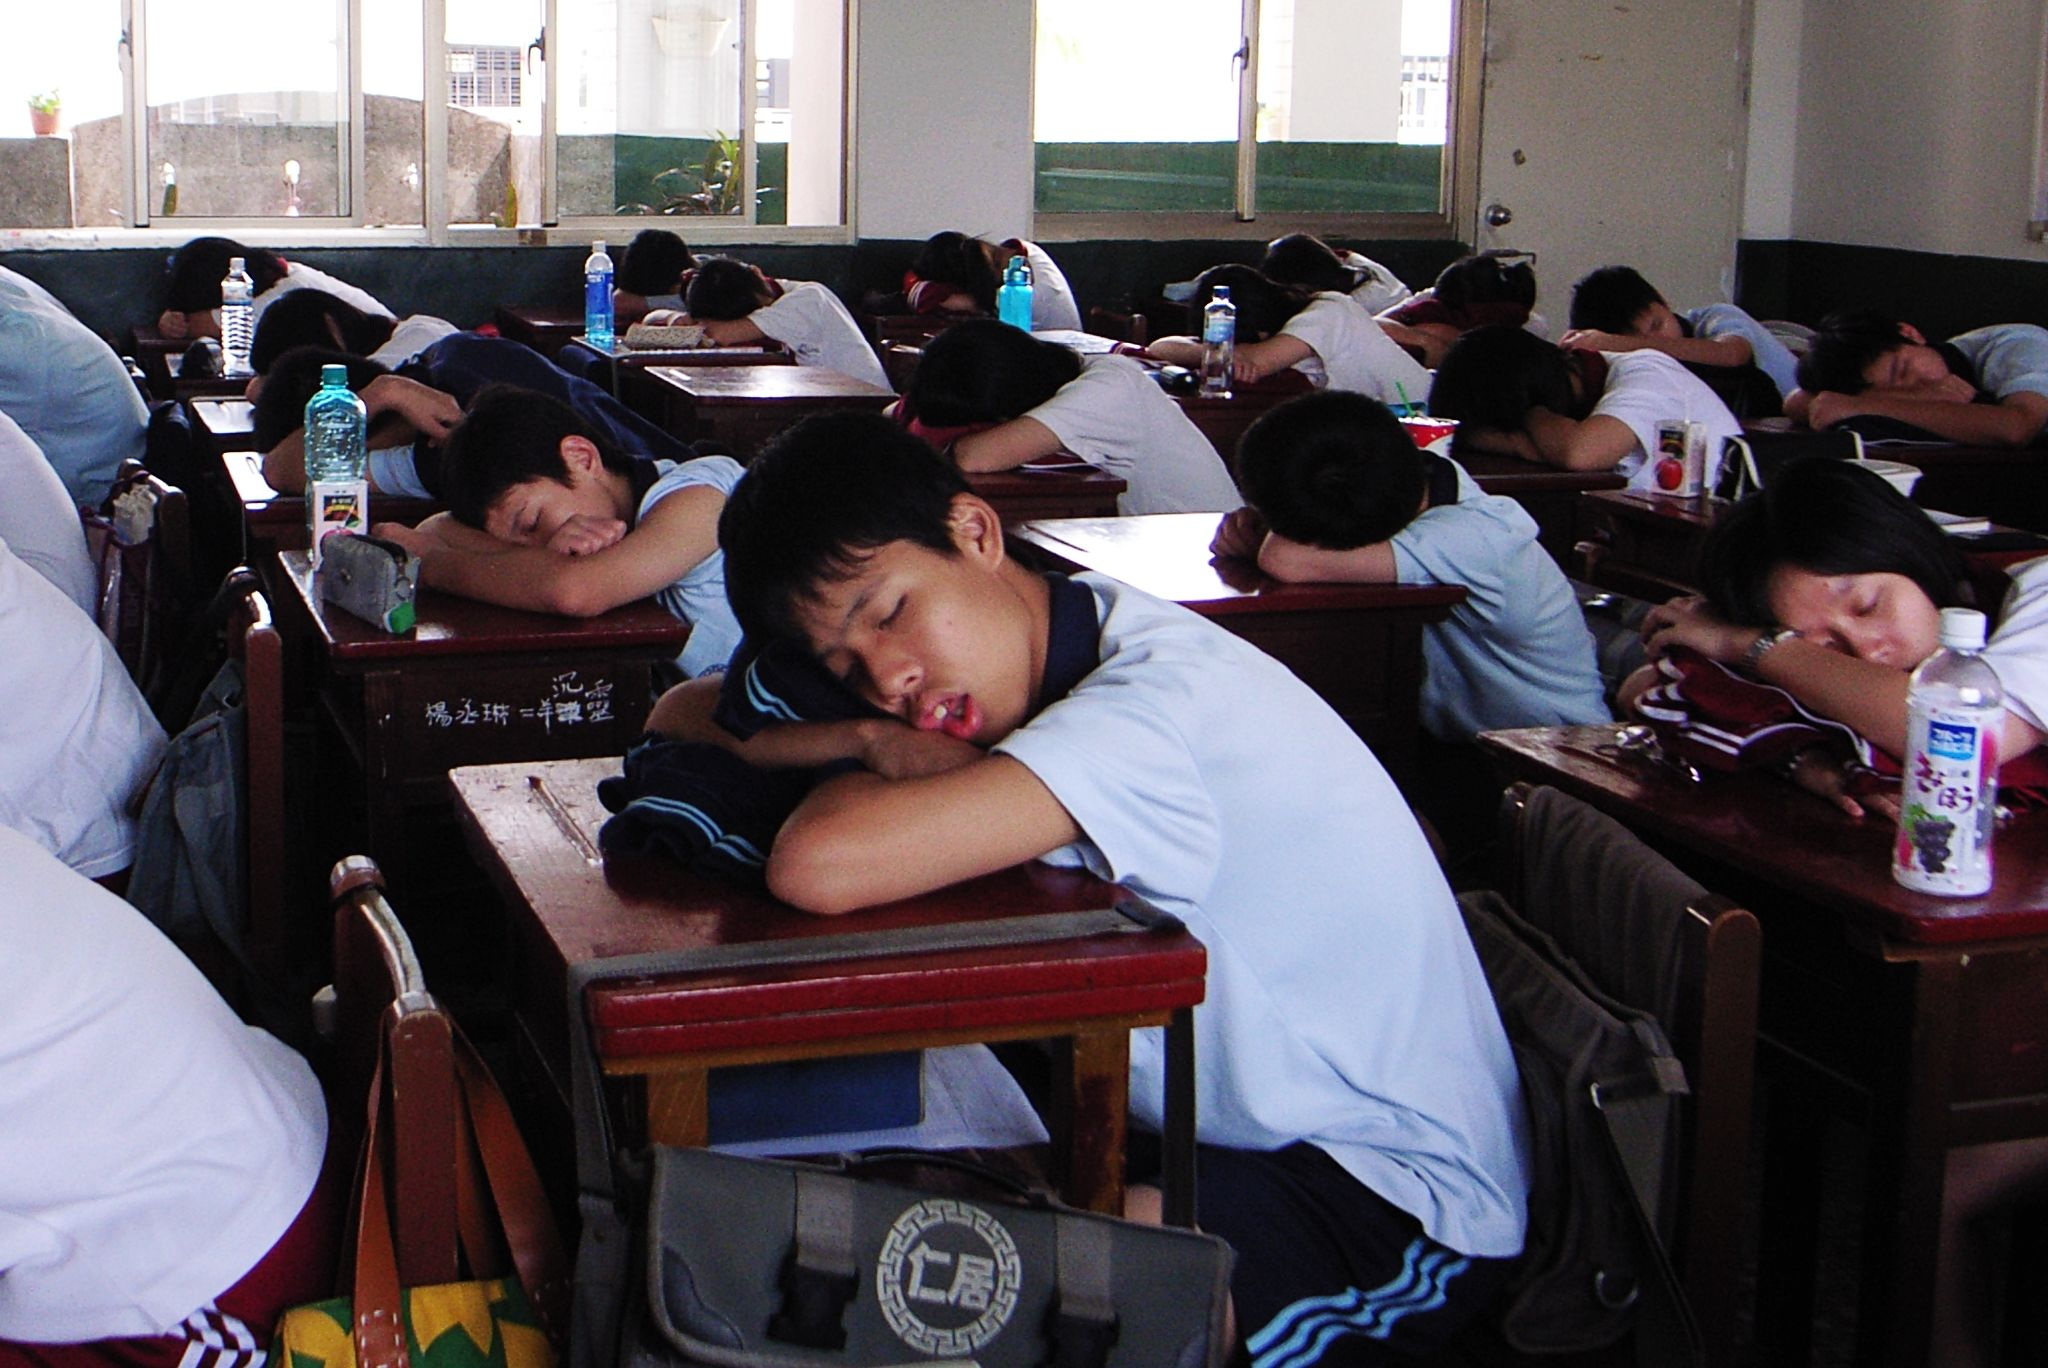 Taiwanese students napping.